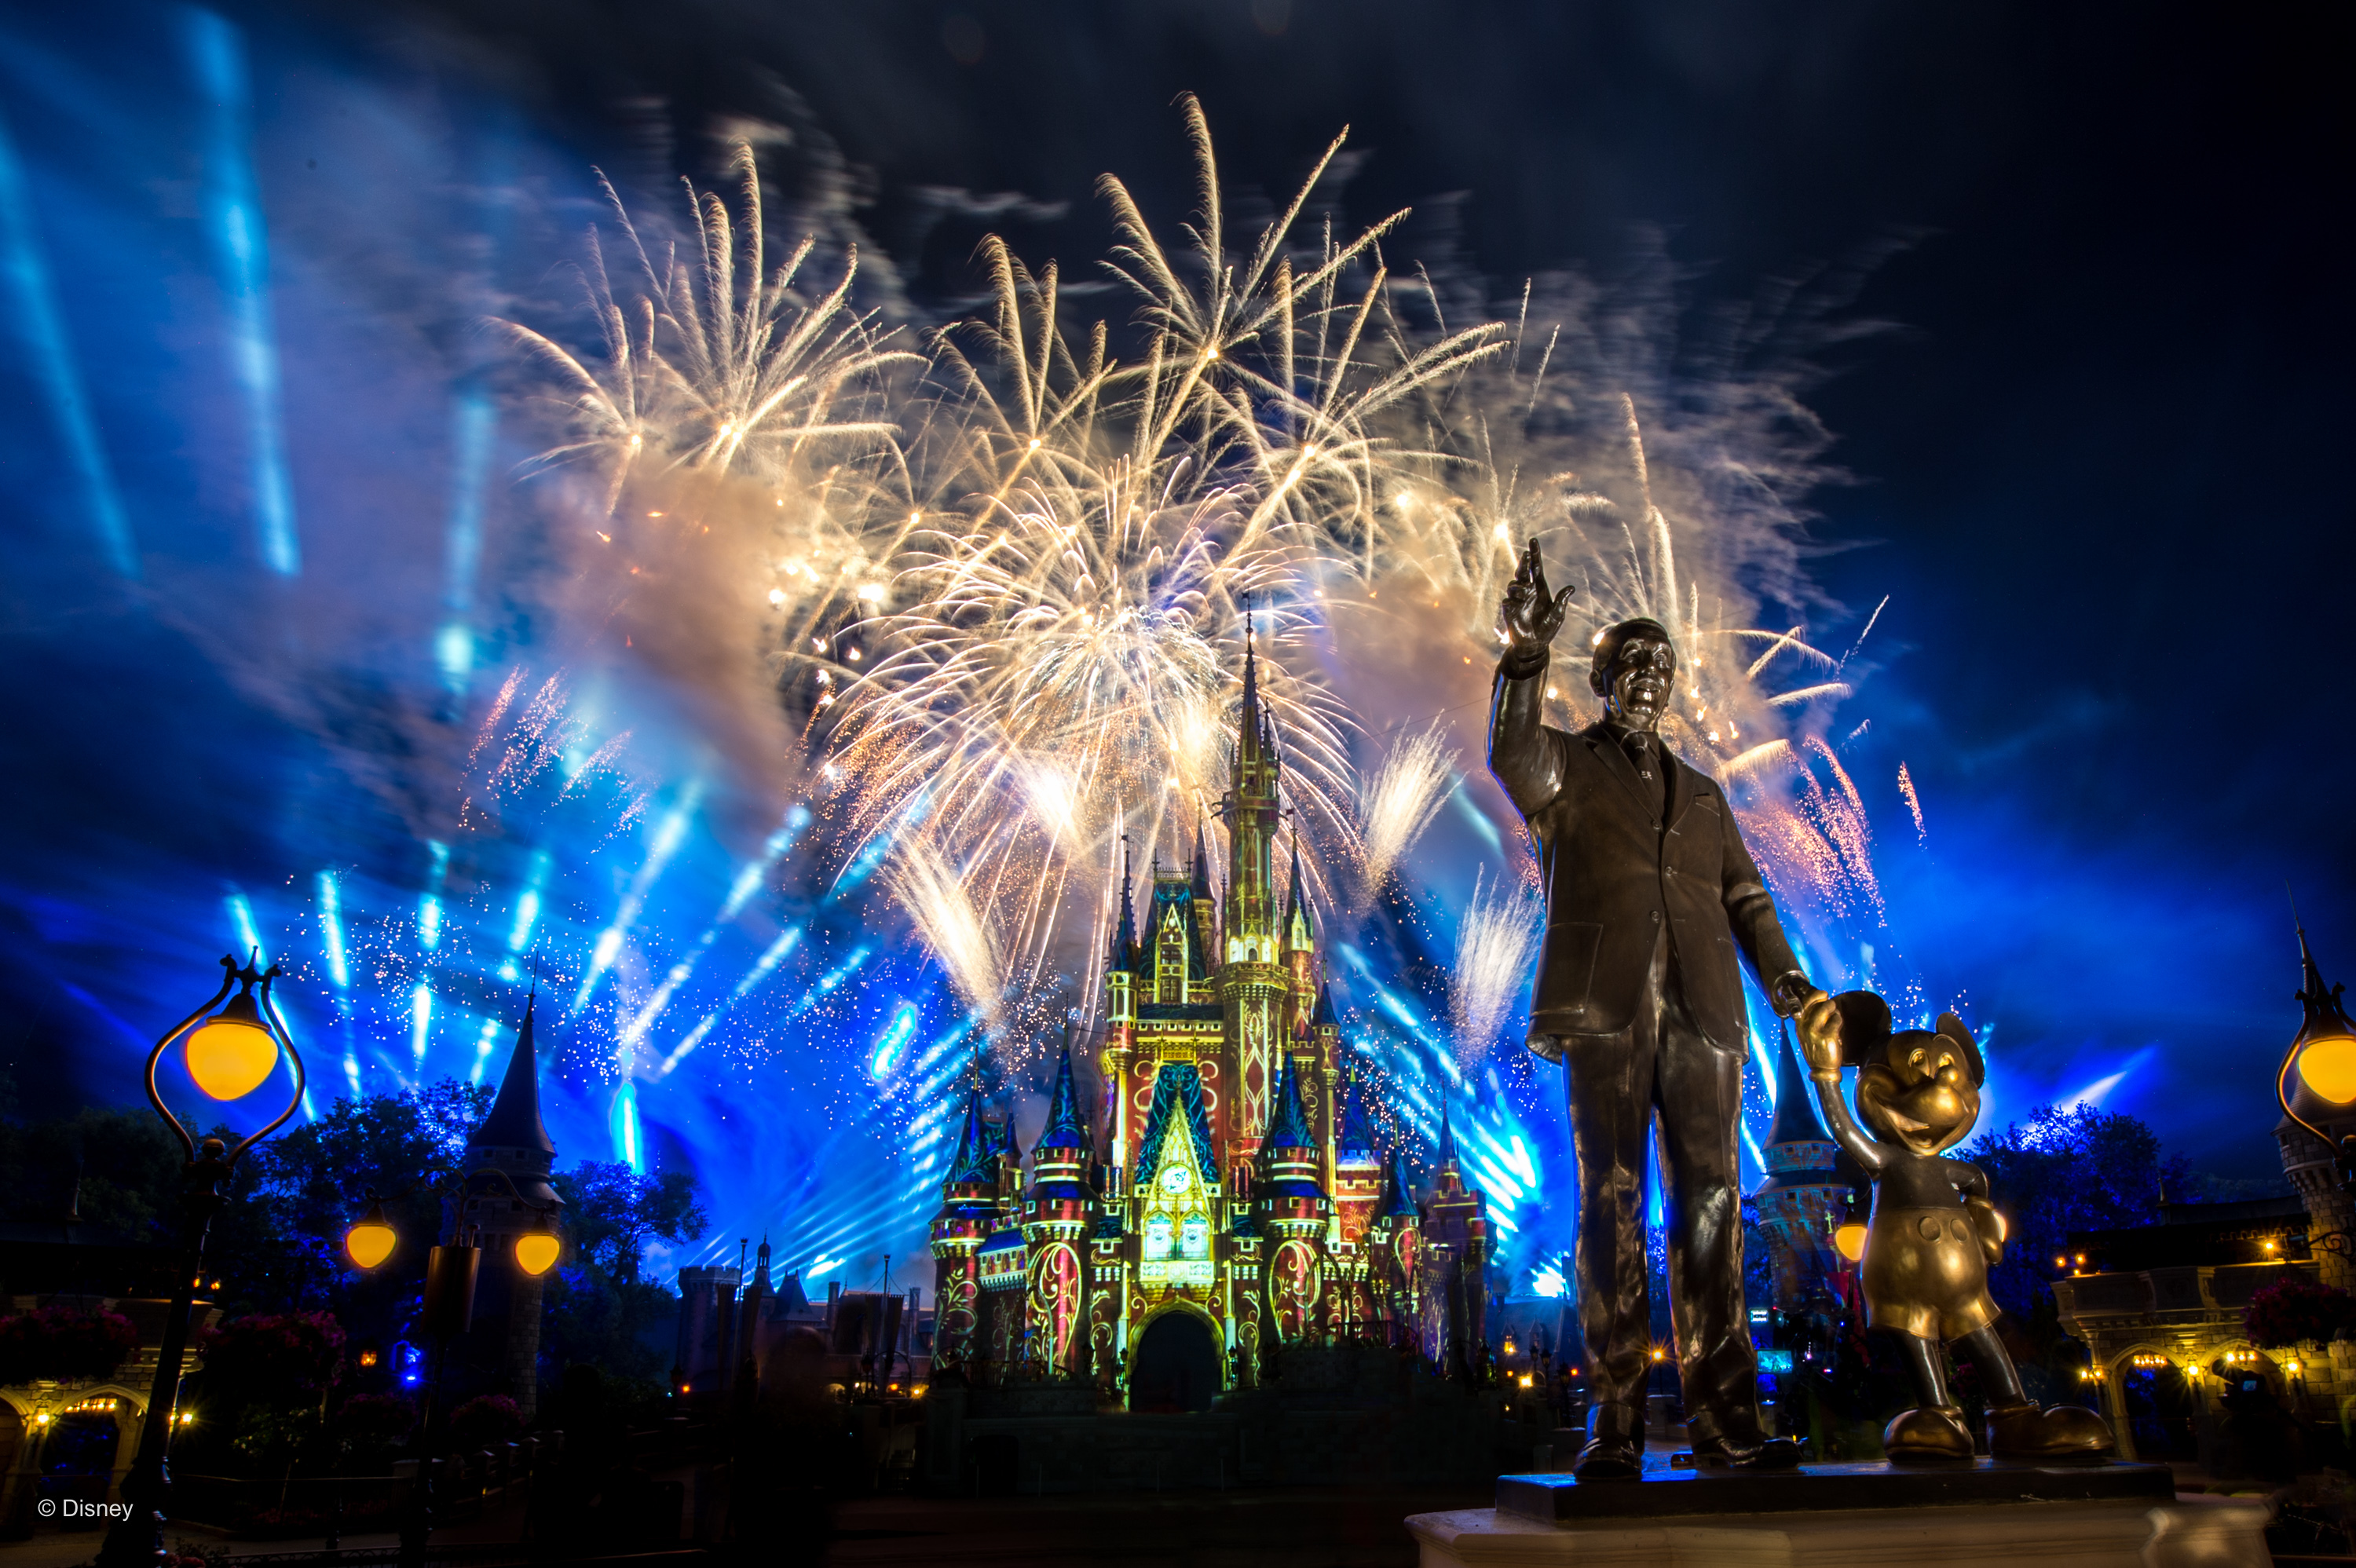 Disney Photopass Releases Free Happily Ever After Mobile And Desktop Wallpapers Available For Download Through June 8 Wdw News Today